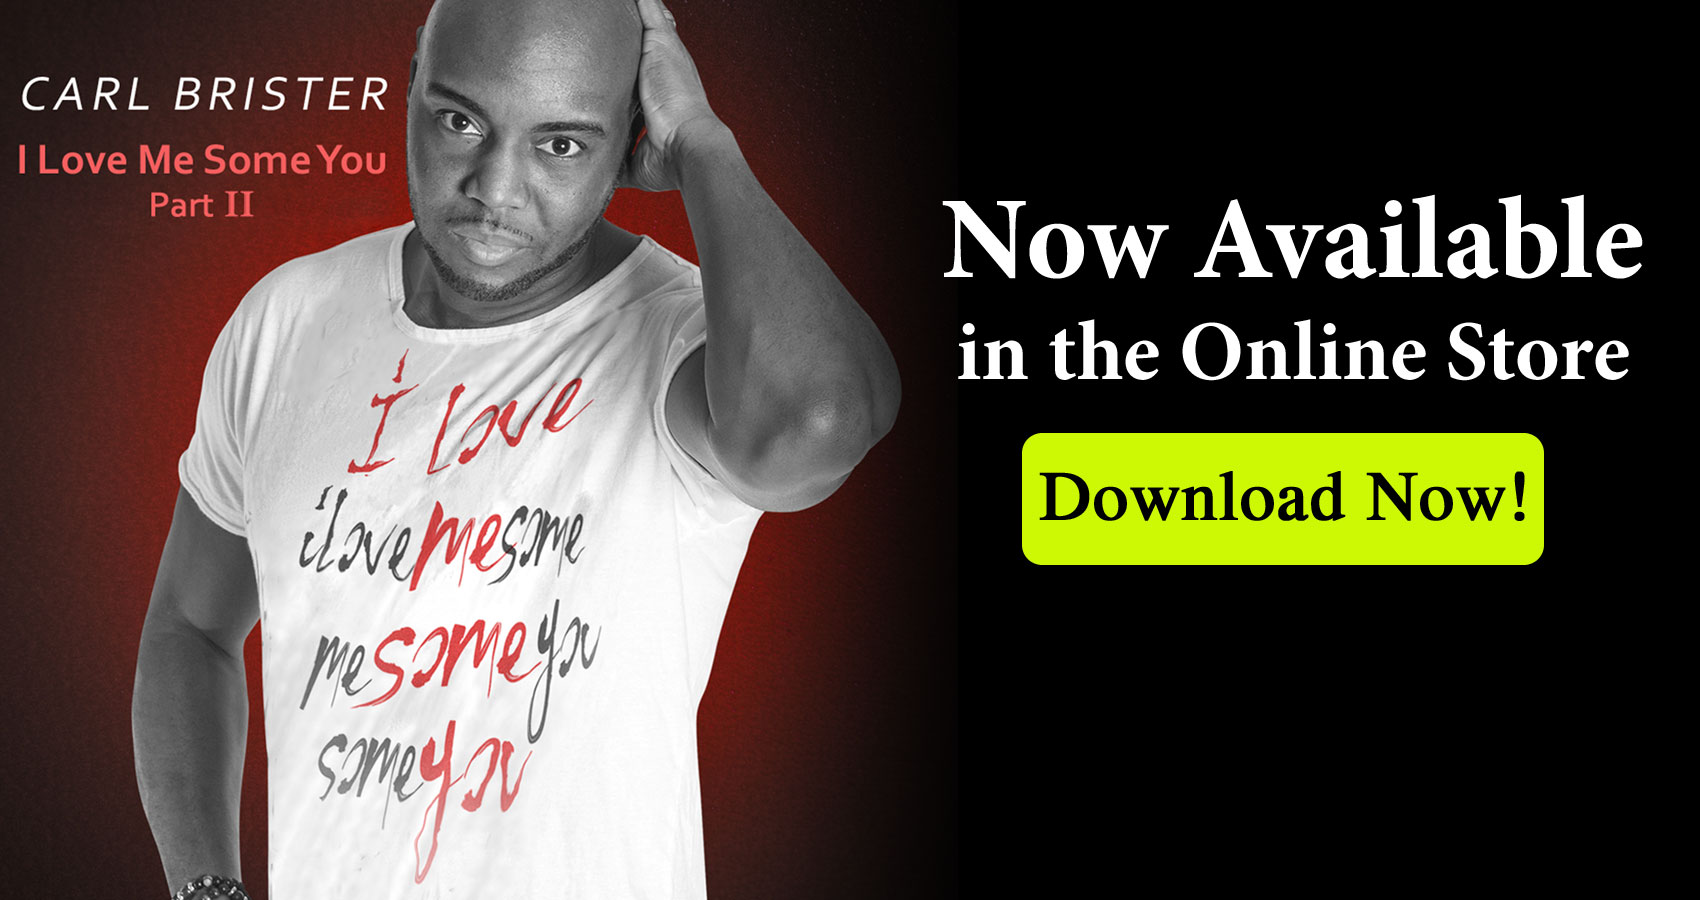 I Love Me Some You - Part II. Available now in the online store. Download a copy today.